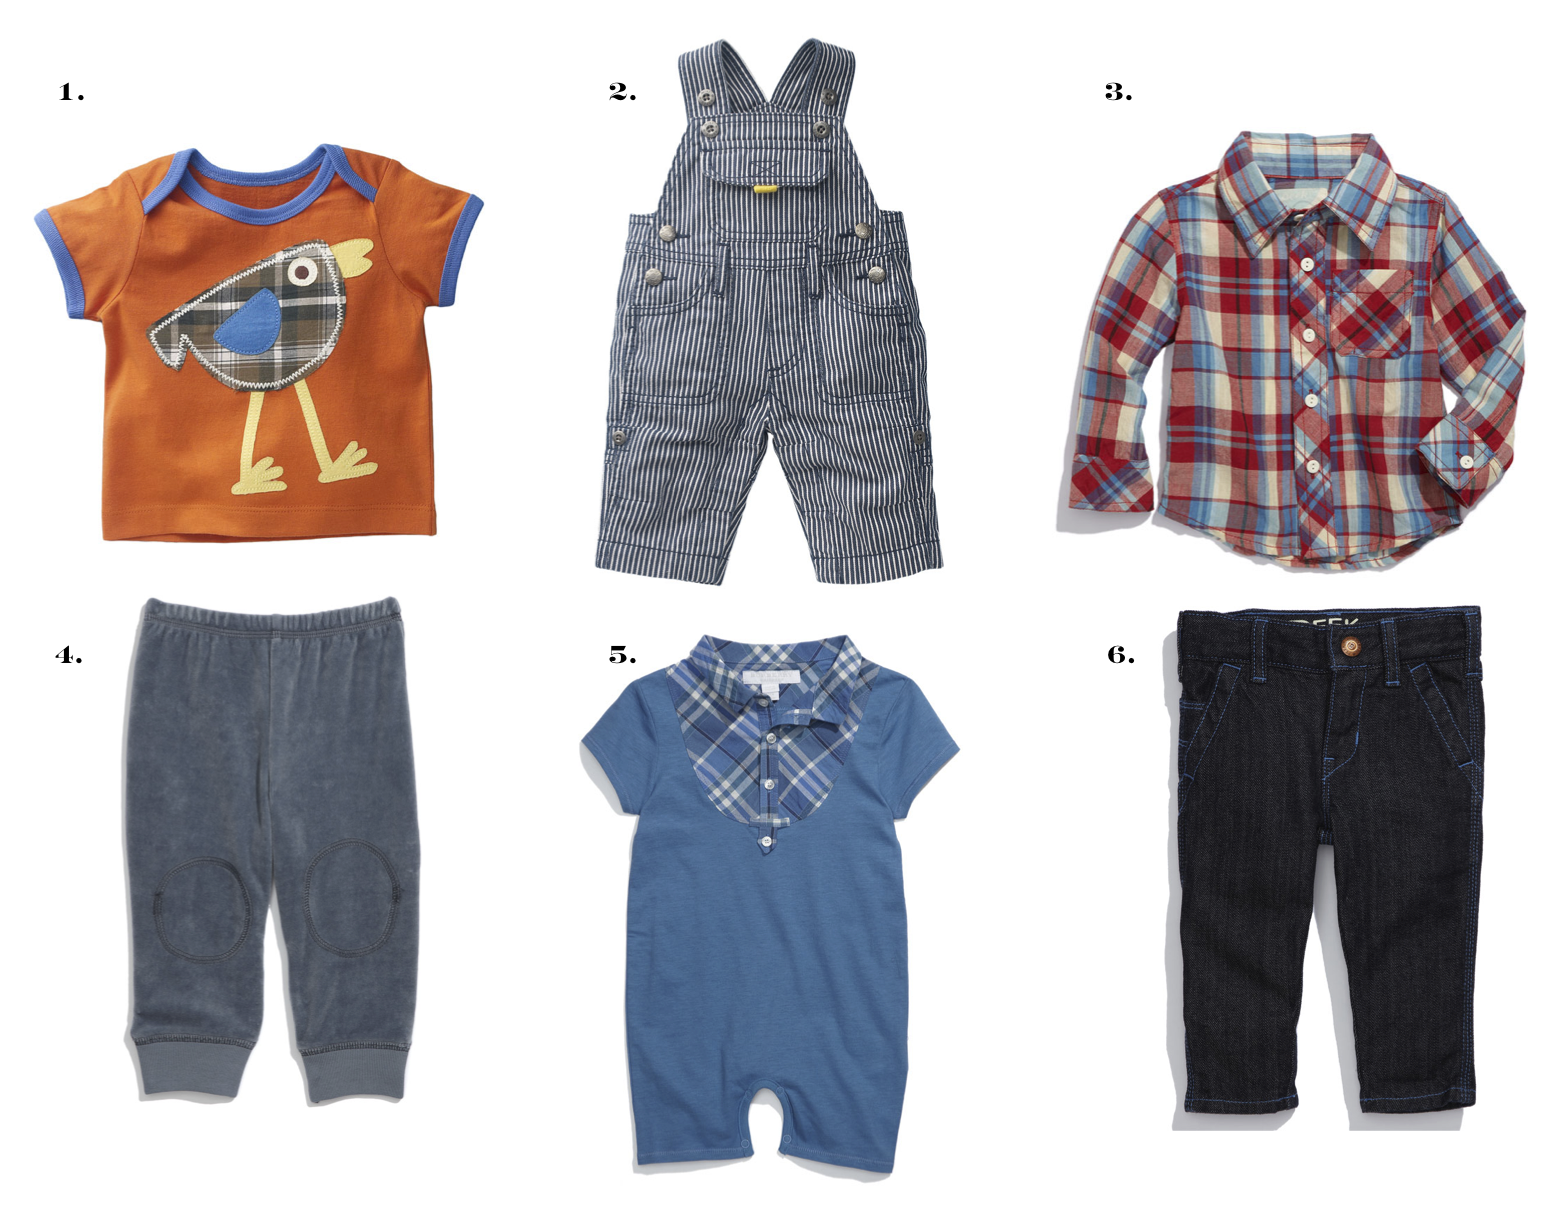 Designer Baby Boy Clothes Nordstrom view on www nordstrom com